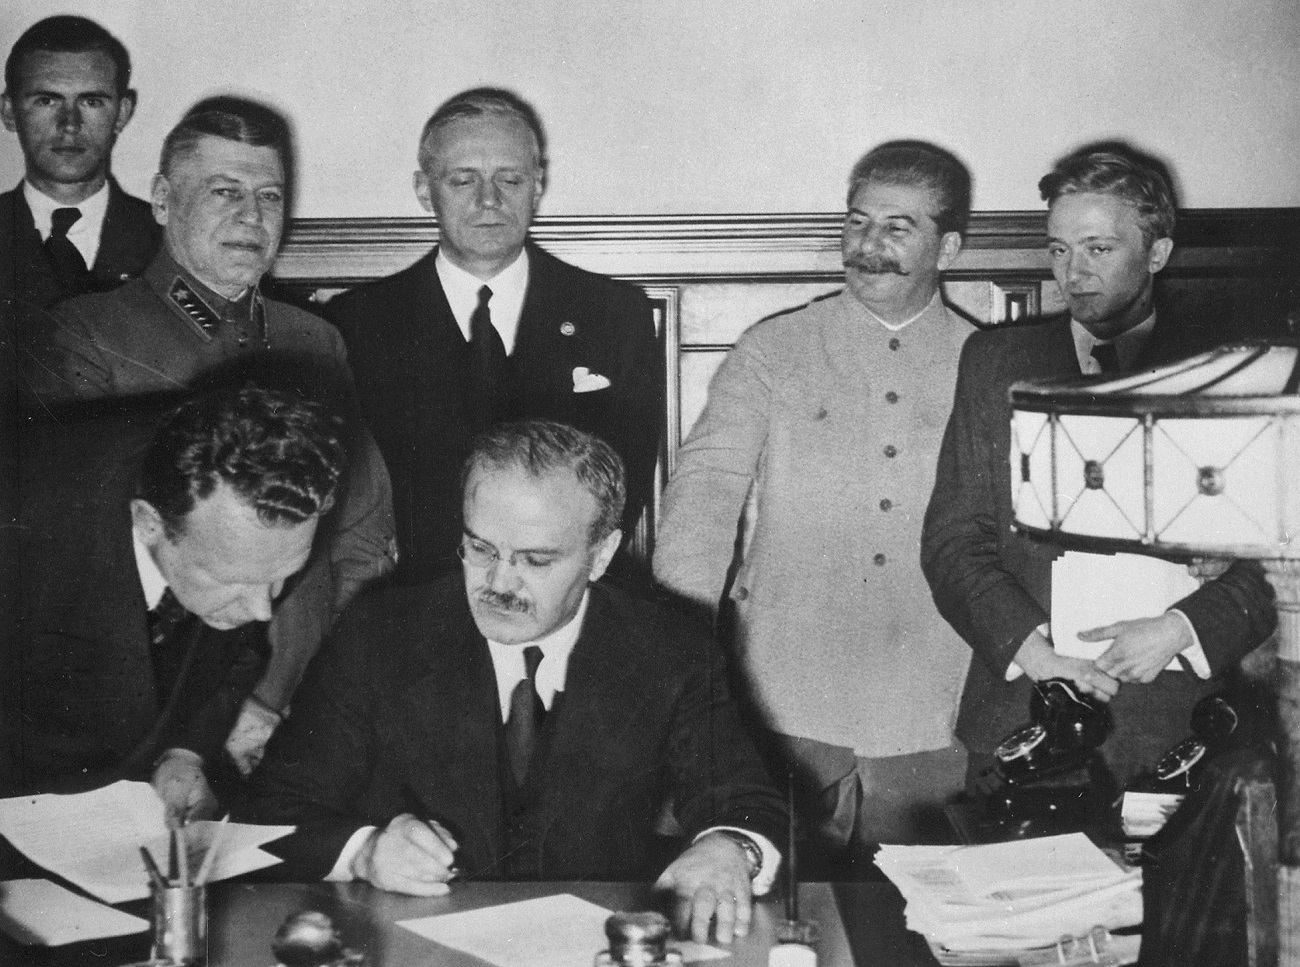 Soviet Foreign Commissar Vyacheslav Molotov signs the German-Soviet nonaggression pact; Joachim von Ribbentrop and Josef Stalin stand behind him. Moscow, August 23. 1939.